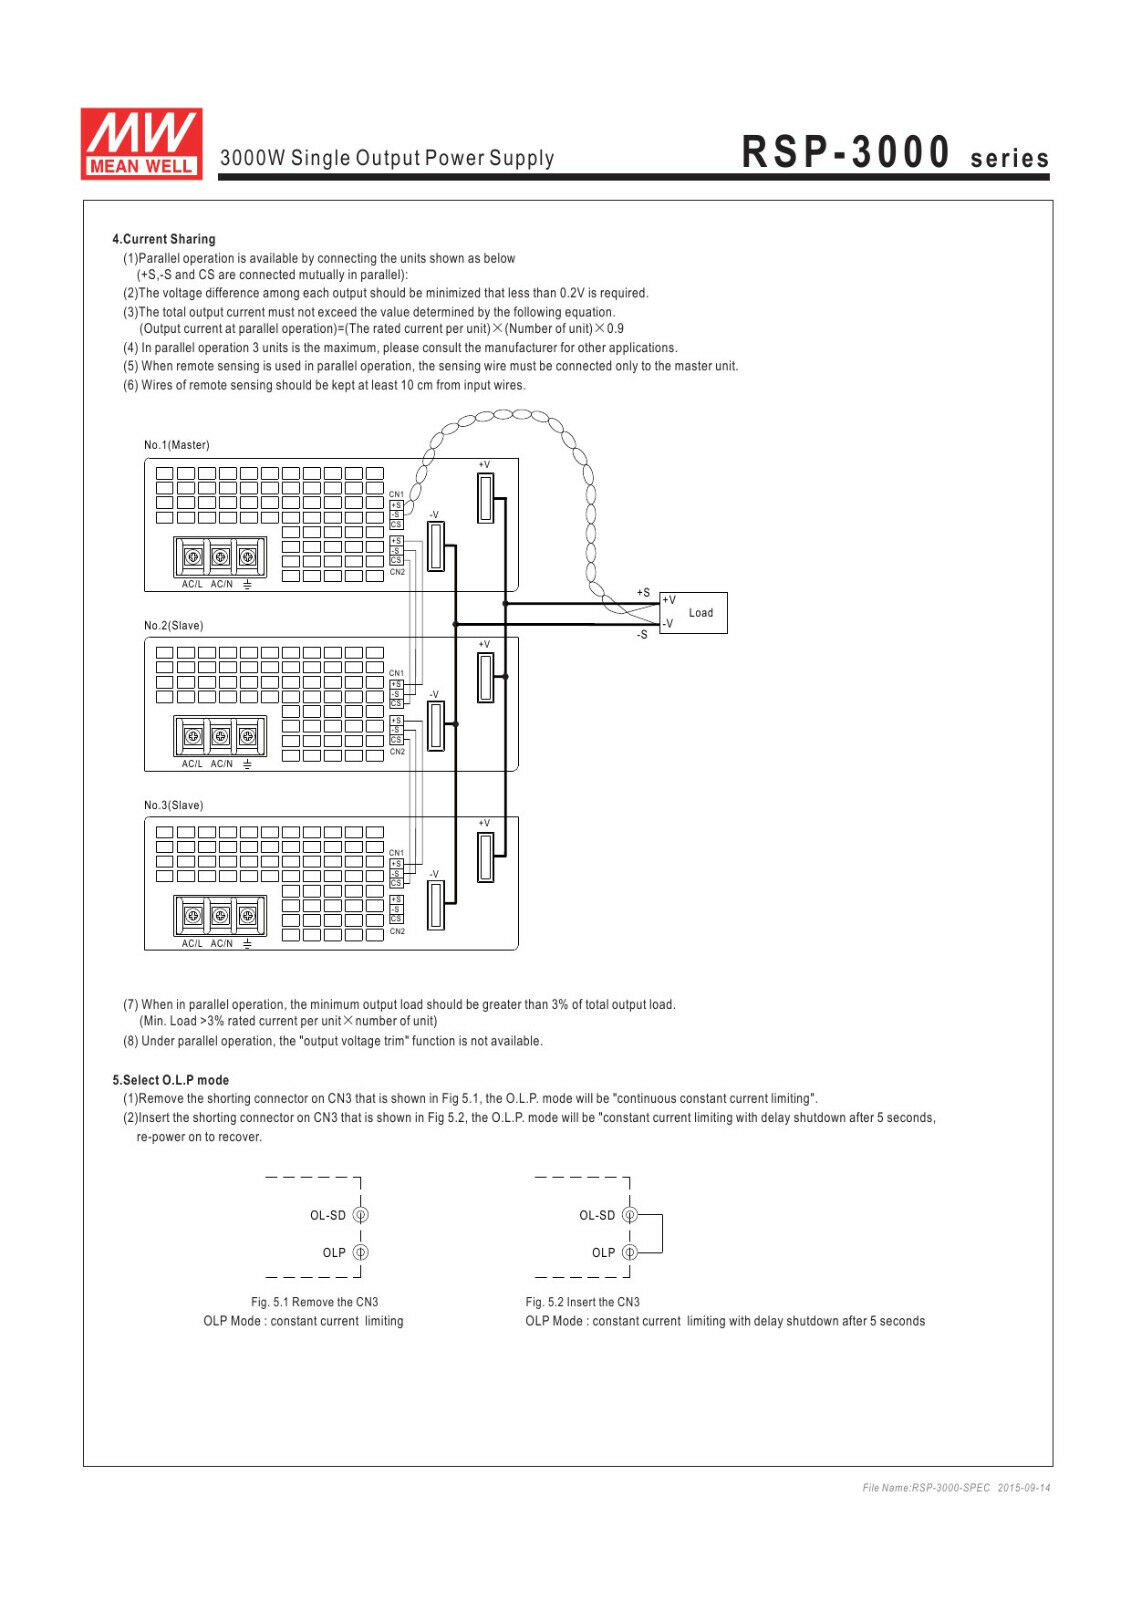 Mean Well Rsp 3000 24 Ac To Dc Power Supply Single Output Volt 30v 15a Variable Regulated Circuit Diagram 125a 3kw Ebay